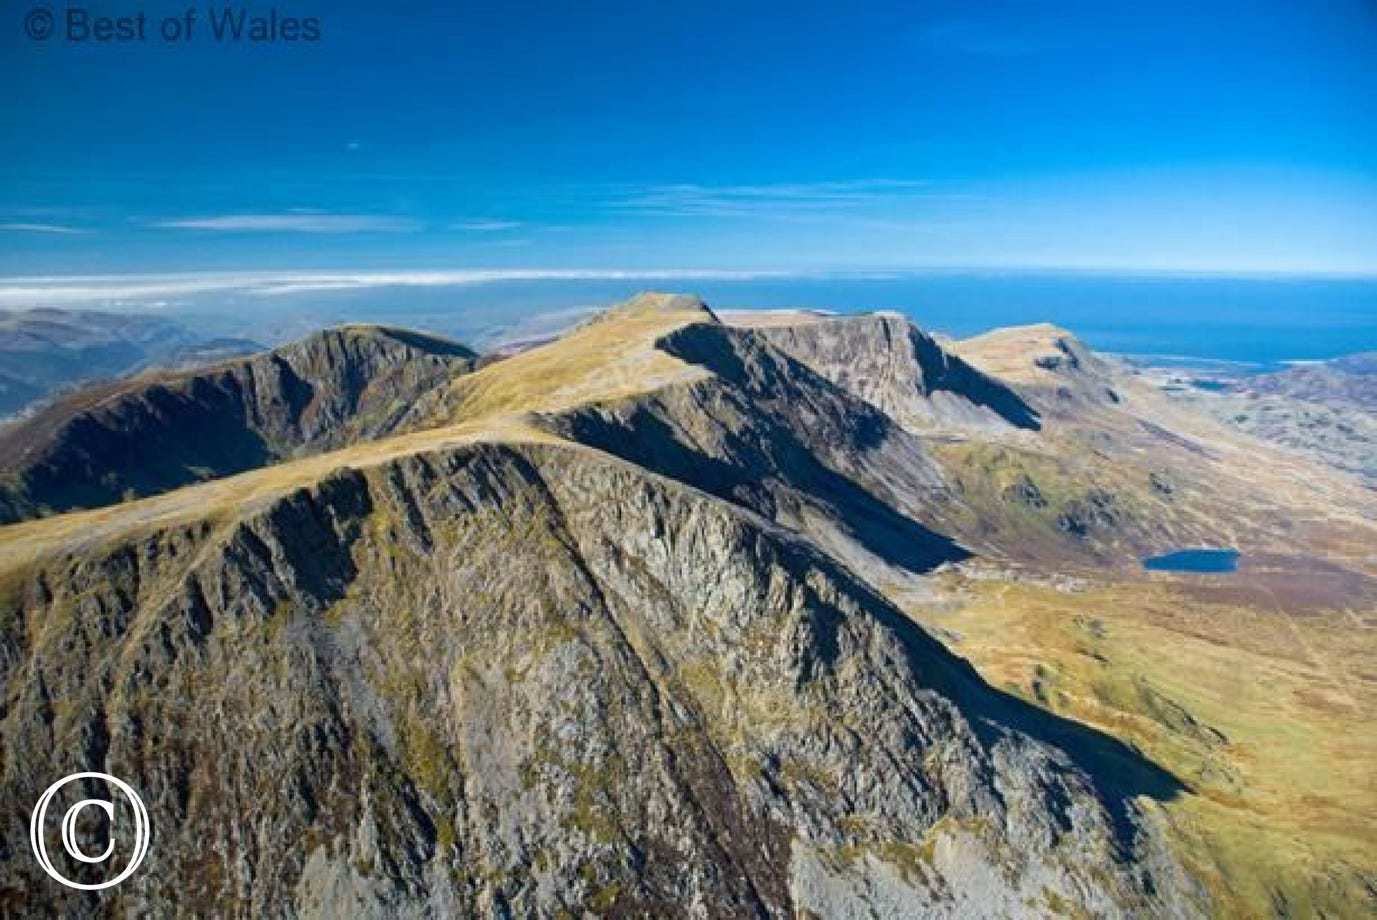 Walk to the peak of Cadair Idris to get this rewarding view